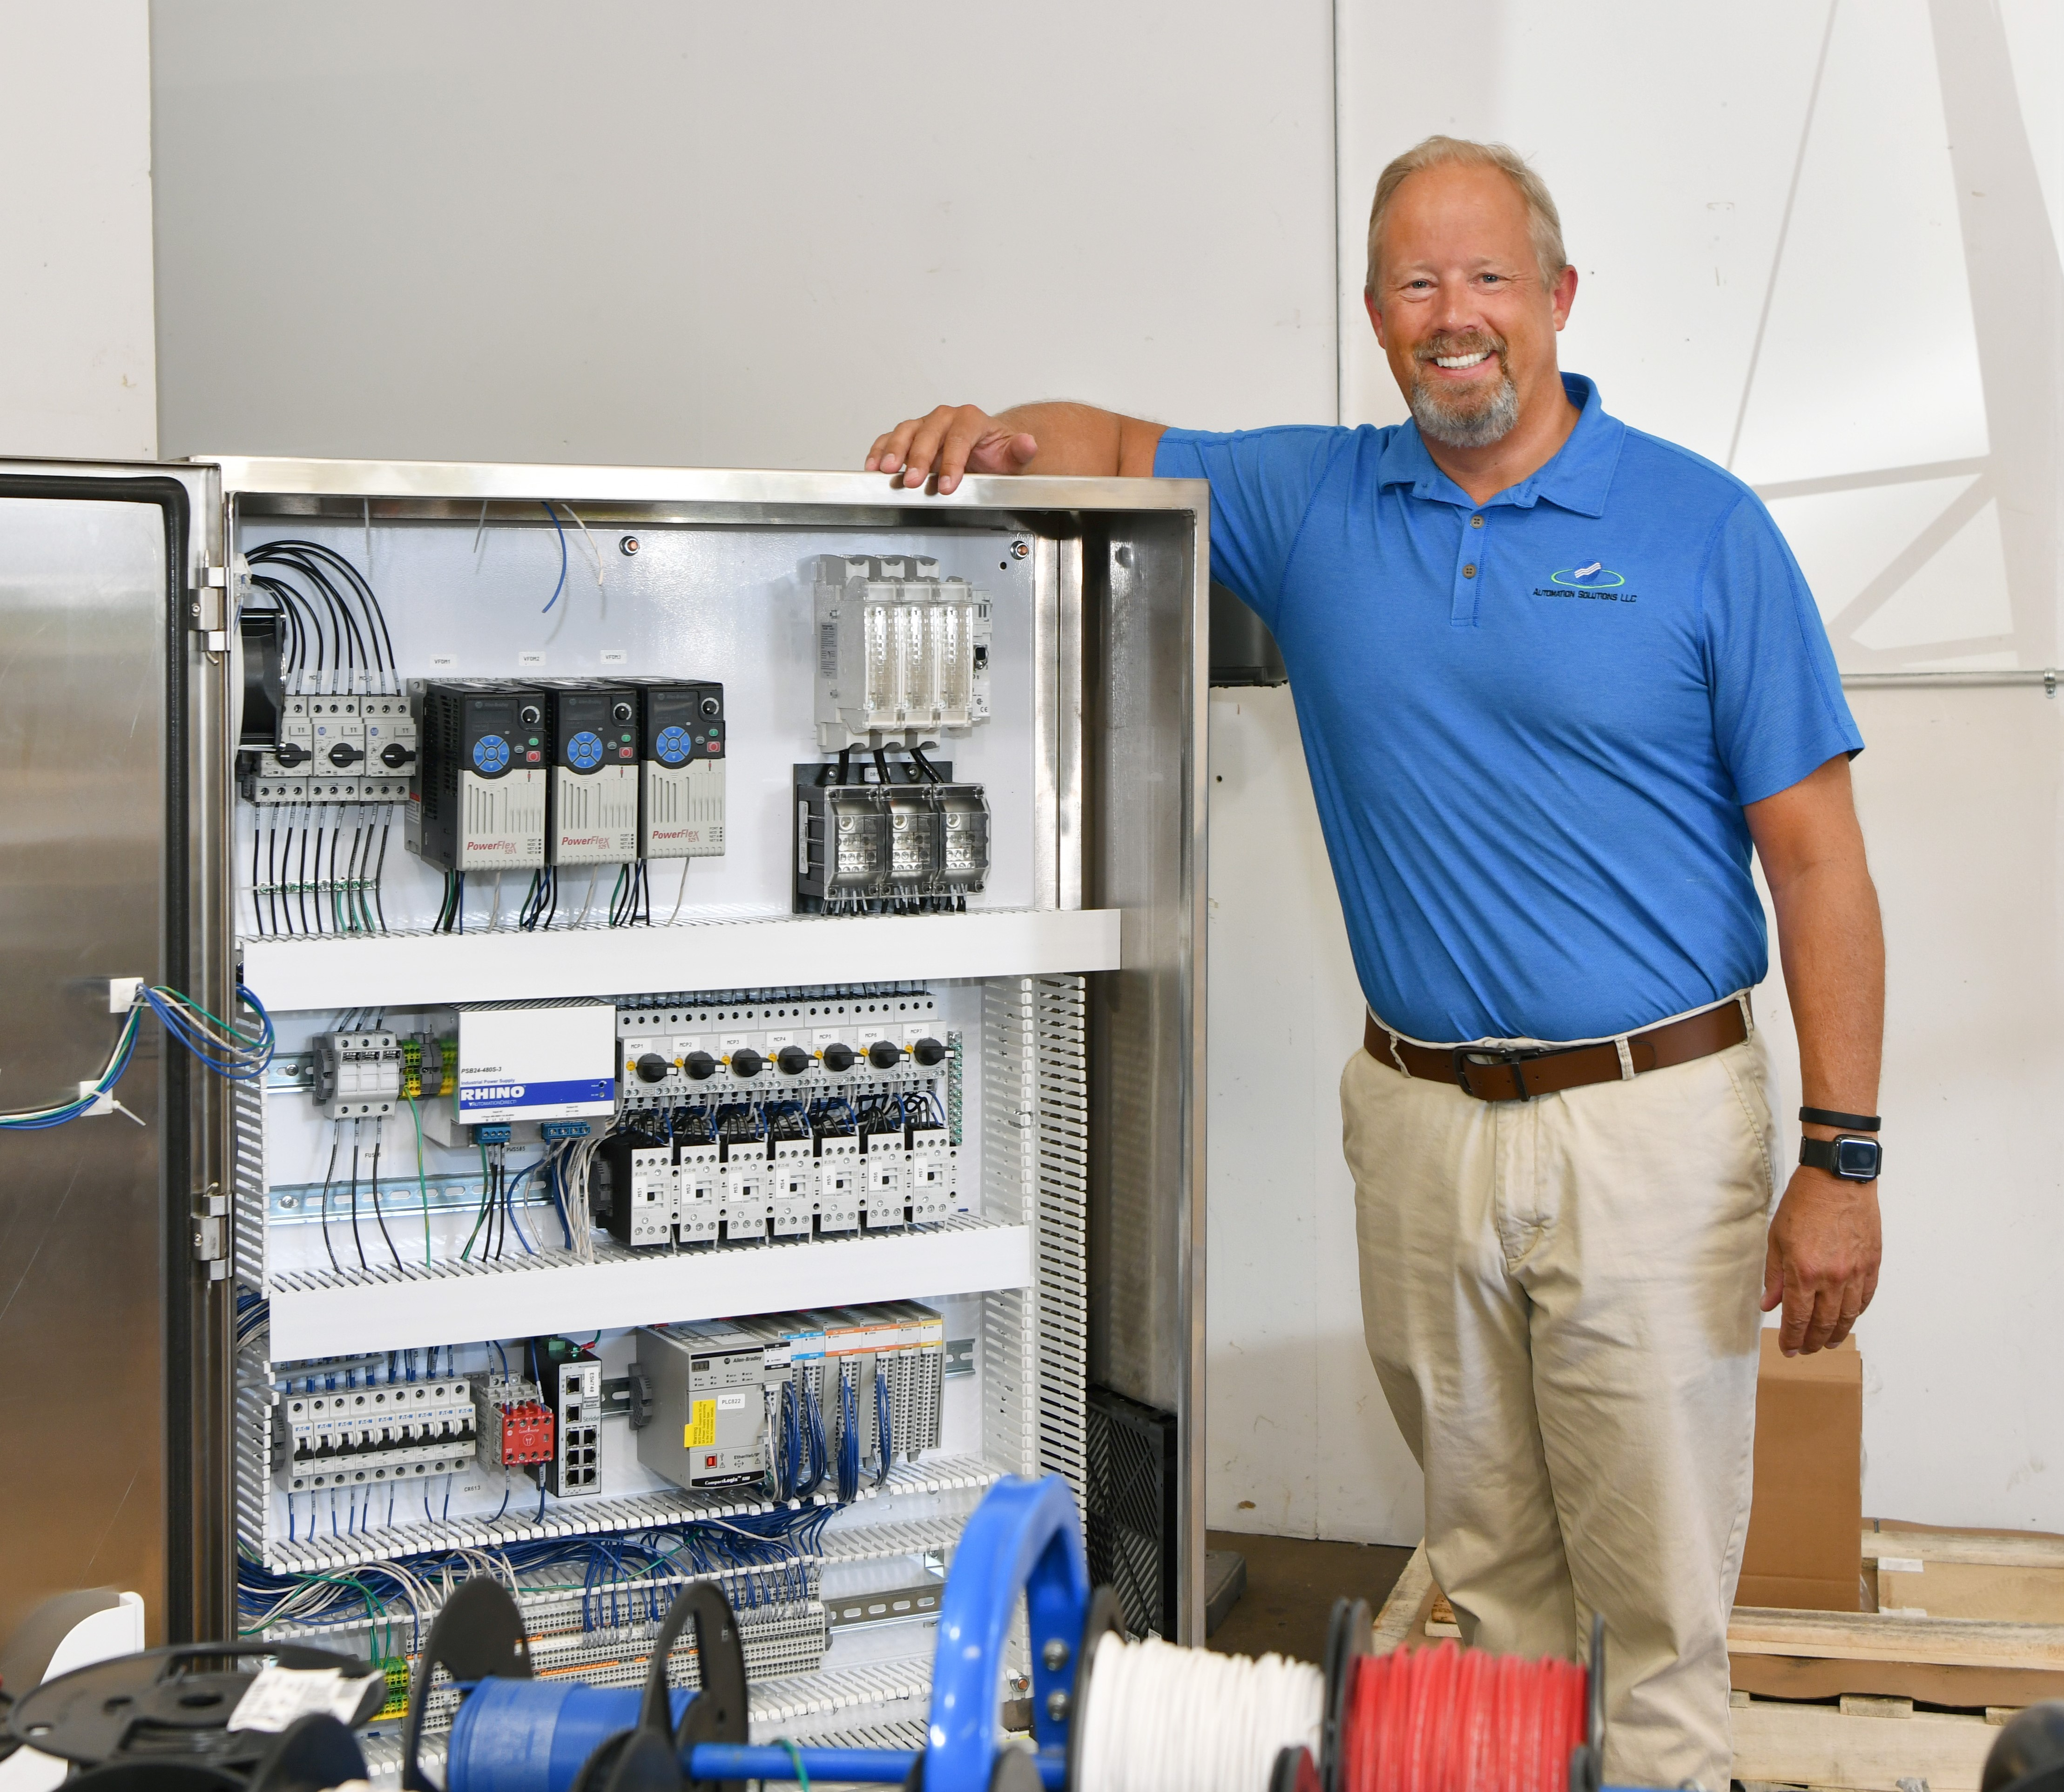 Automation Solutions president Steve Nordness stands next to control panel.